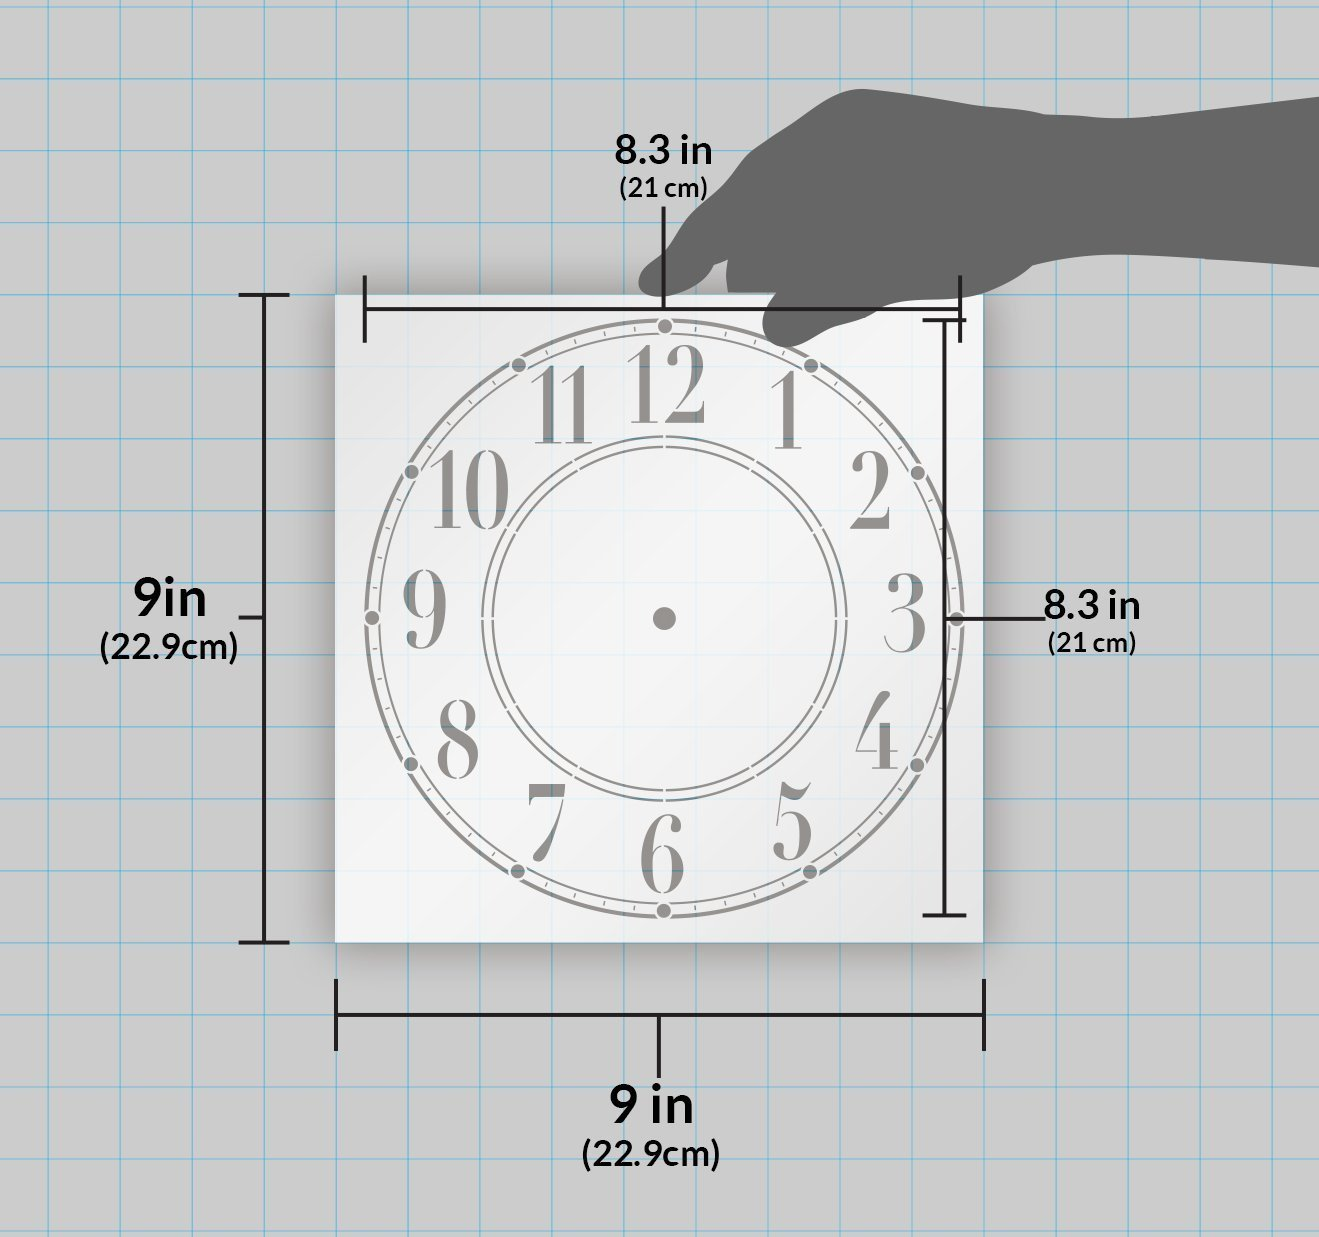 Schoolhouse Clock Stencil by StudioR12 | Basic Style Clock Face Art - Medium 9.5 x 9.5-inch Reusable Mylar Template | Painting, Chalk, Mixed Media | Use for Crafting, DIY Home Decor - STCL179_3